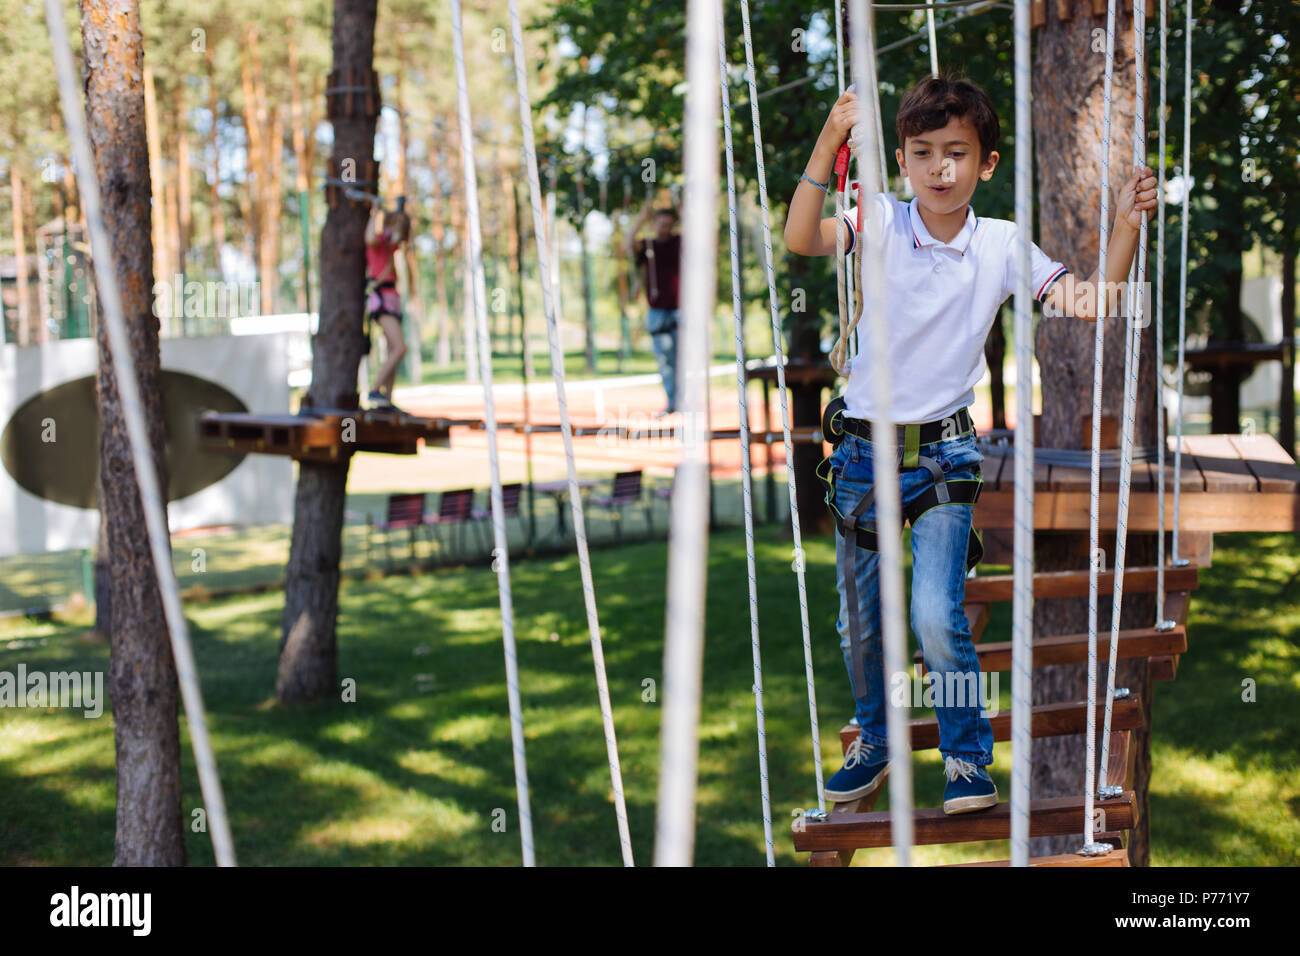 Pleasant preteen boy enjoying himself at rope park - Stock Image